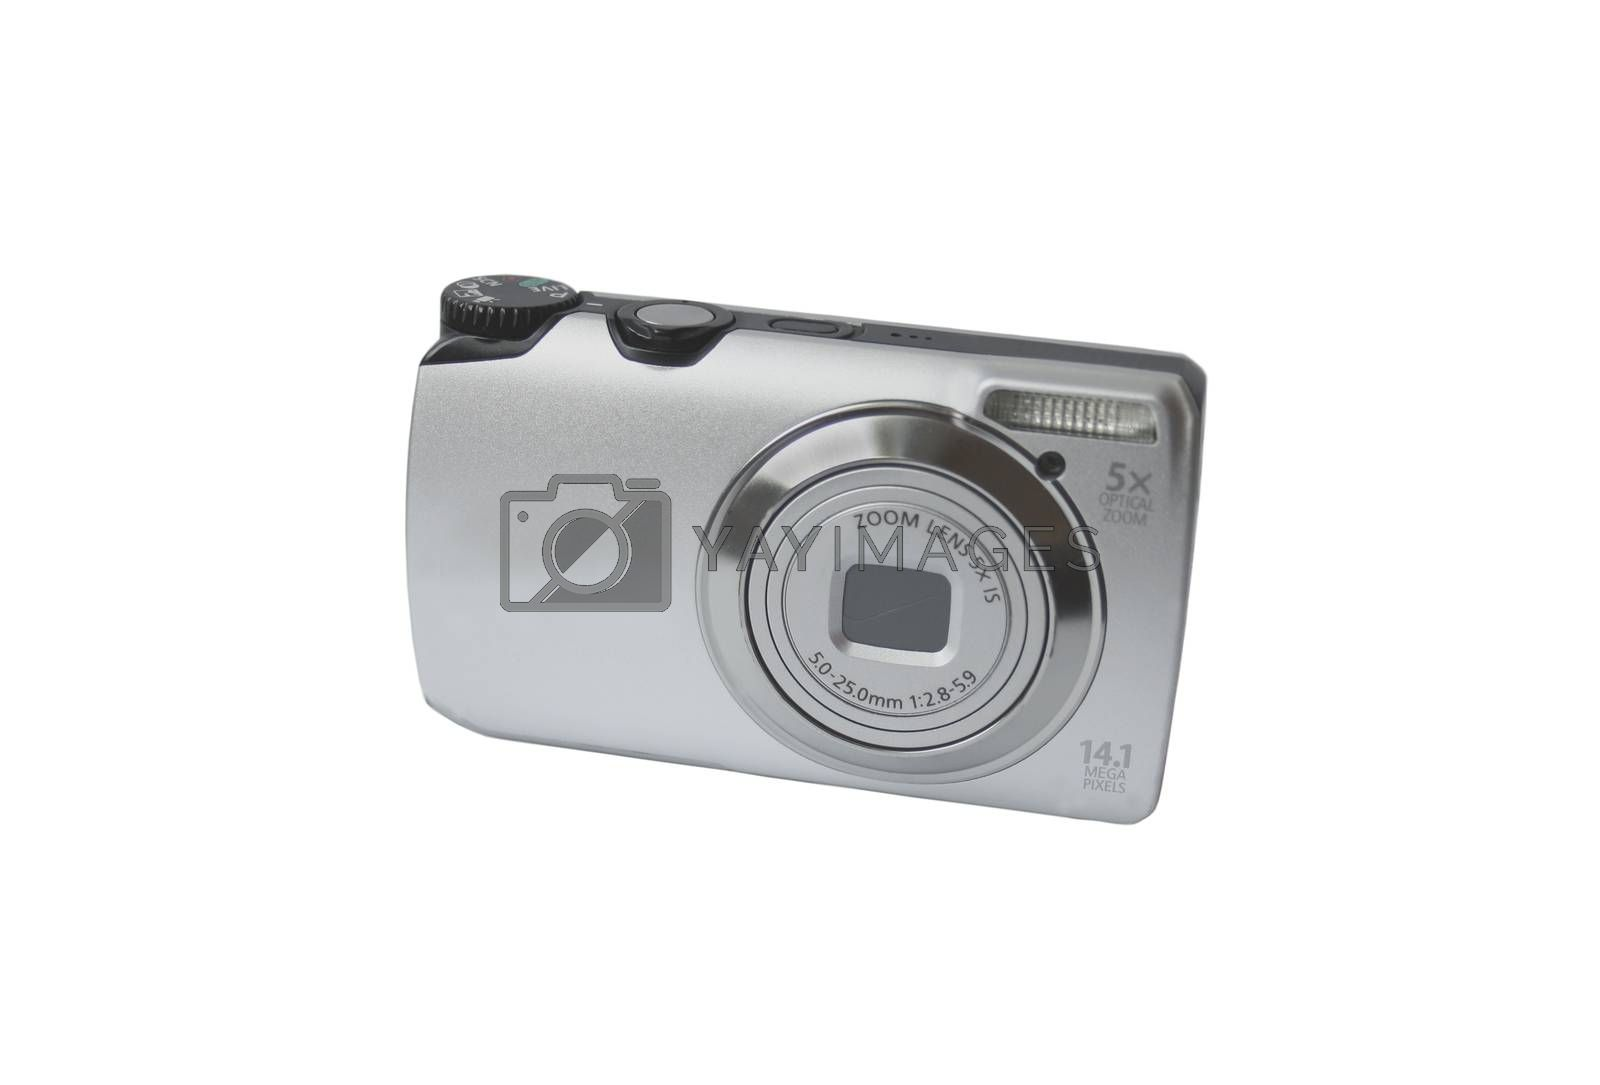 The camera compact by NataliaL